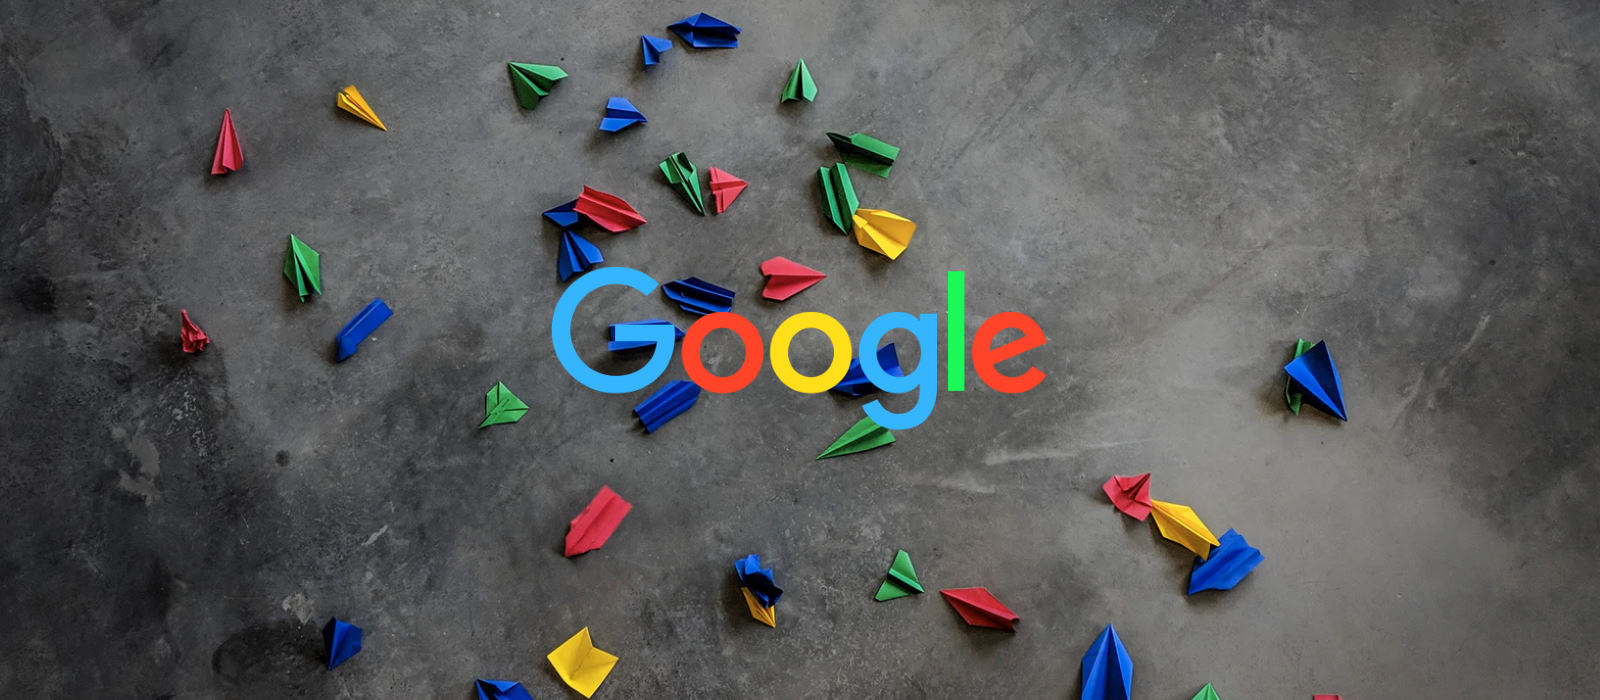 Google banned 2500+ Chinese YouTube channels for disinformation